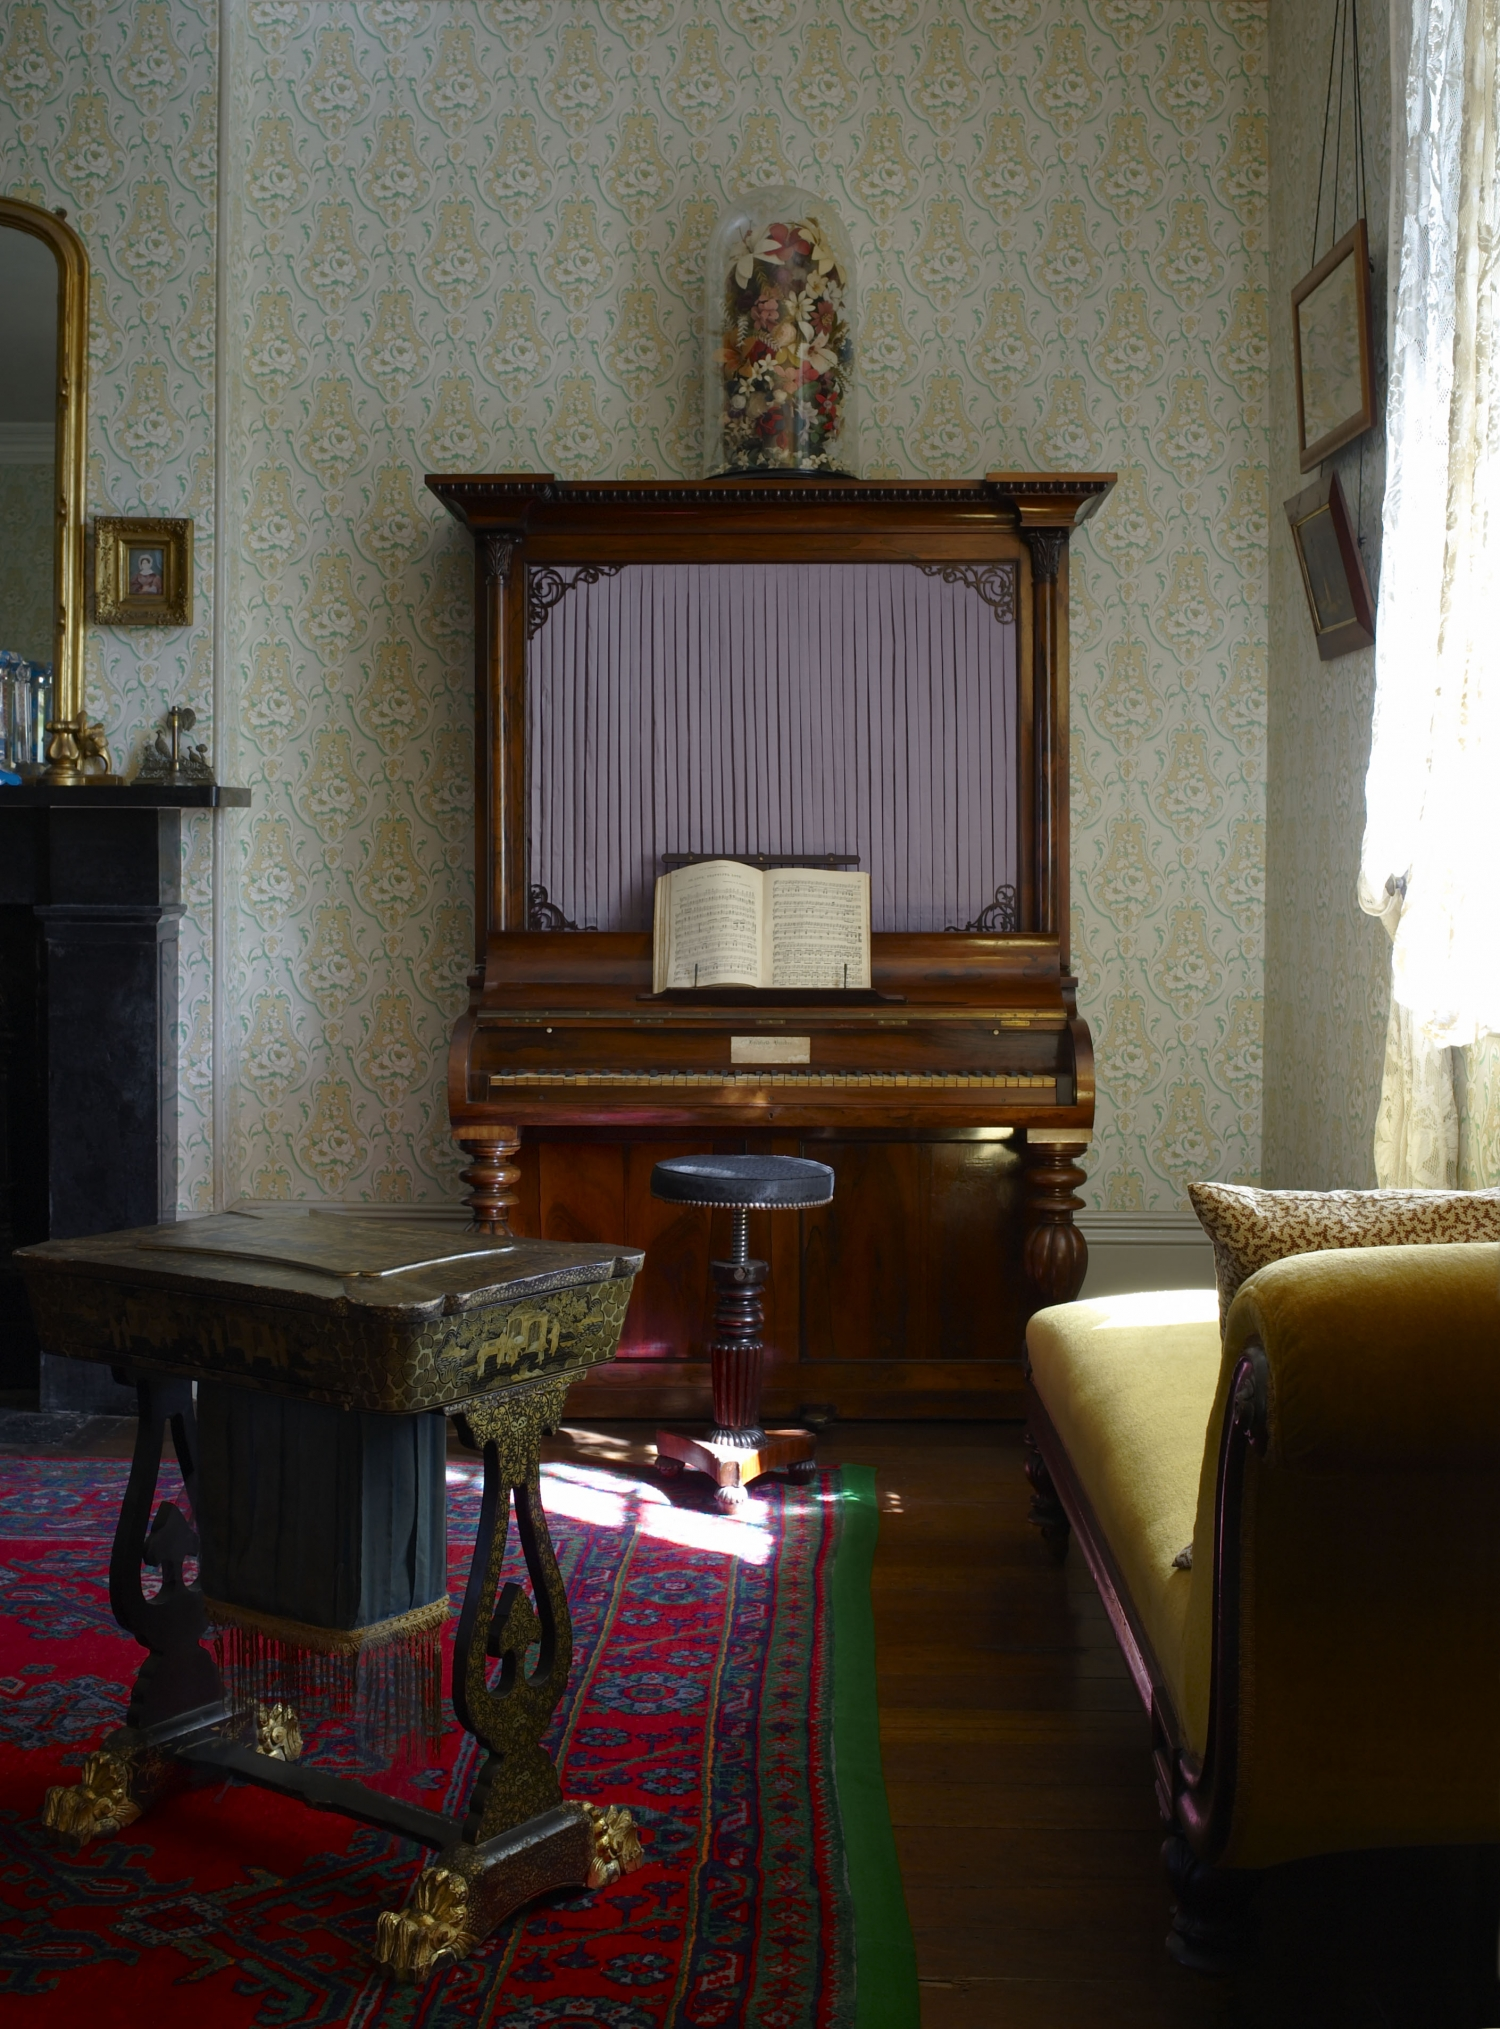 Colour photo of room at Vaucluse House showing couch, piano and sewing box on red and blue carpet.